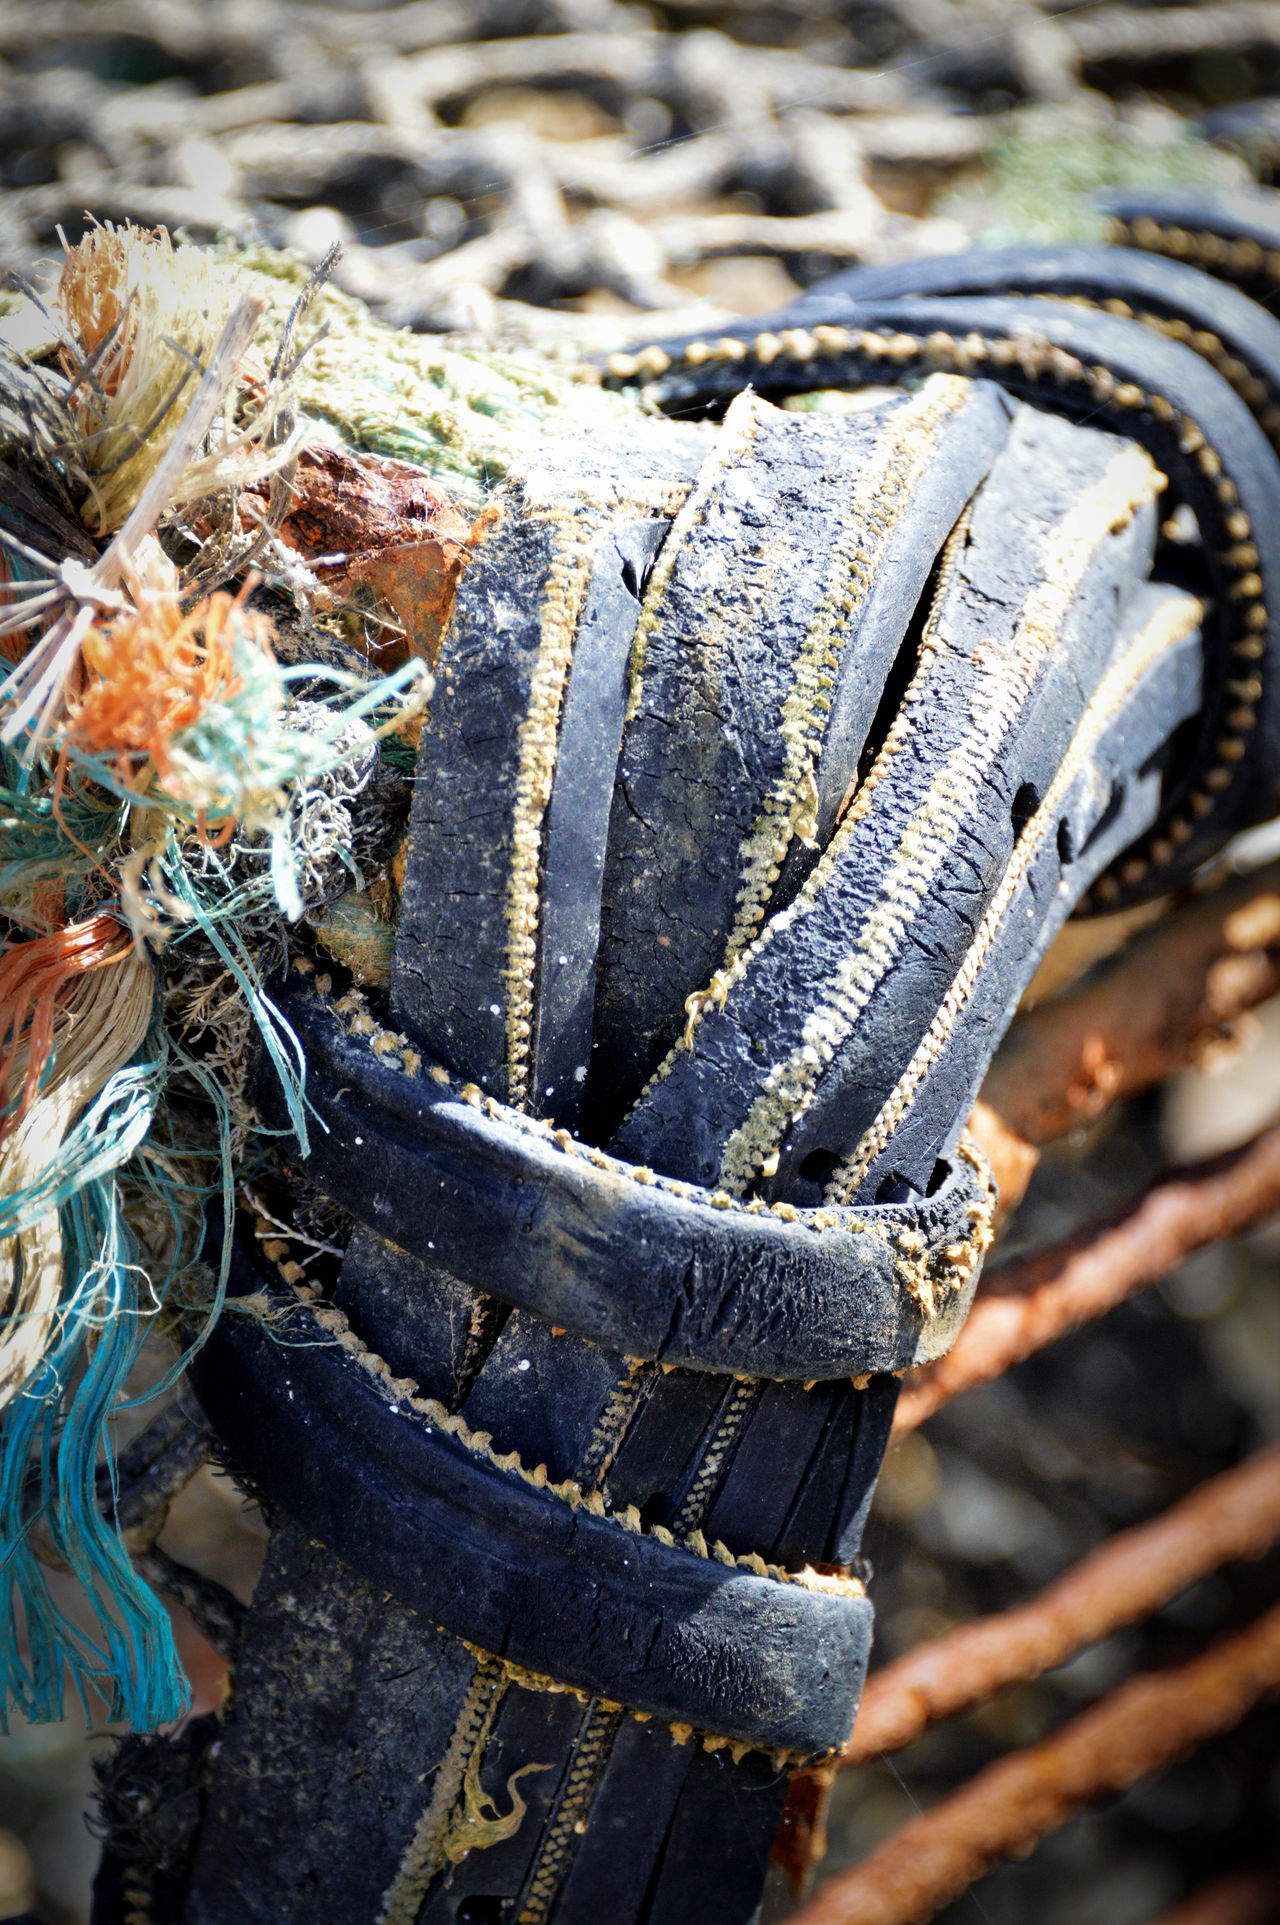 Close-up Day Nature Nautical Equipment Netting No People Outdoors Rope